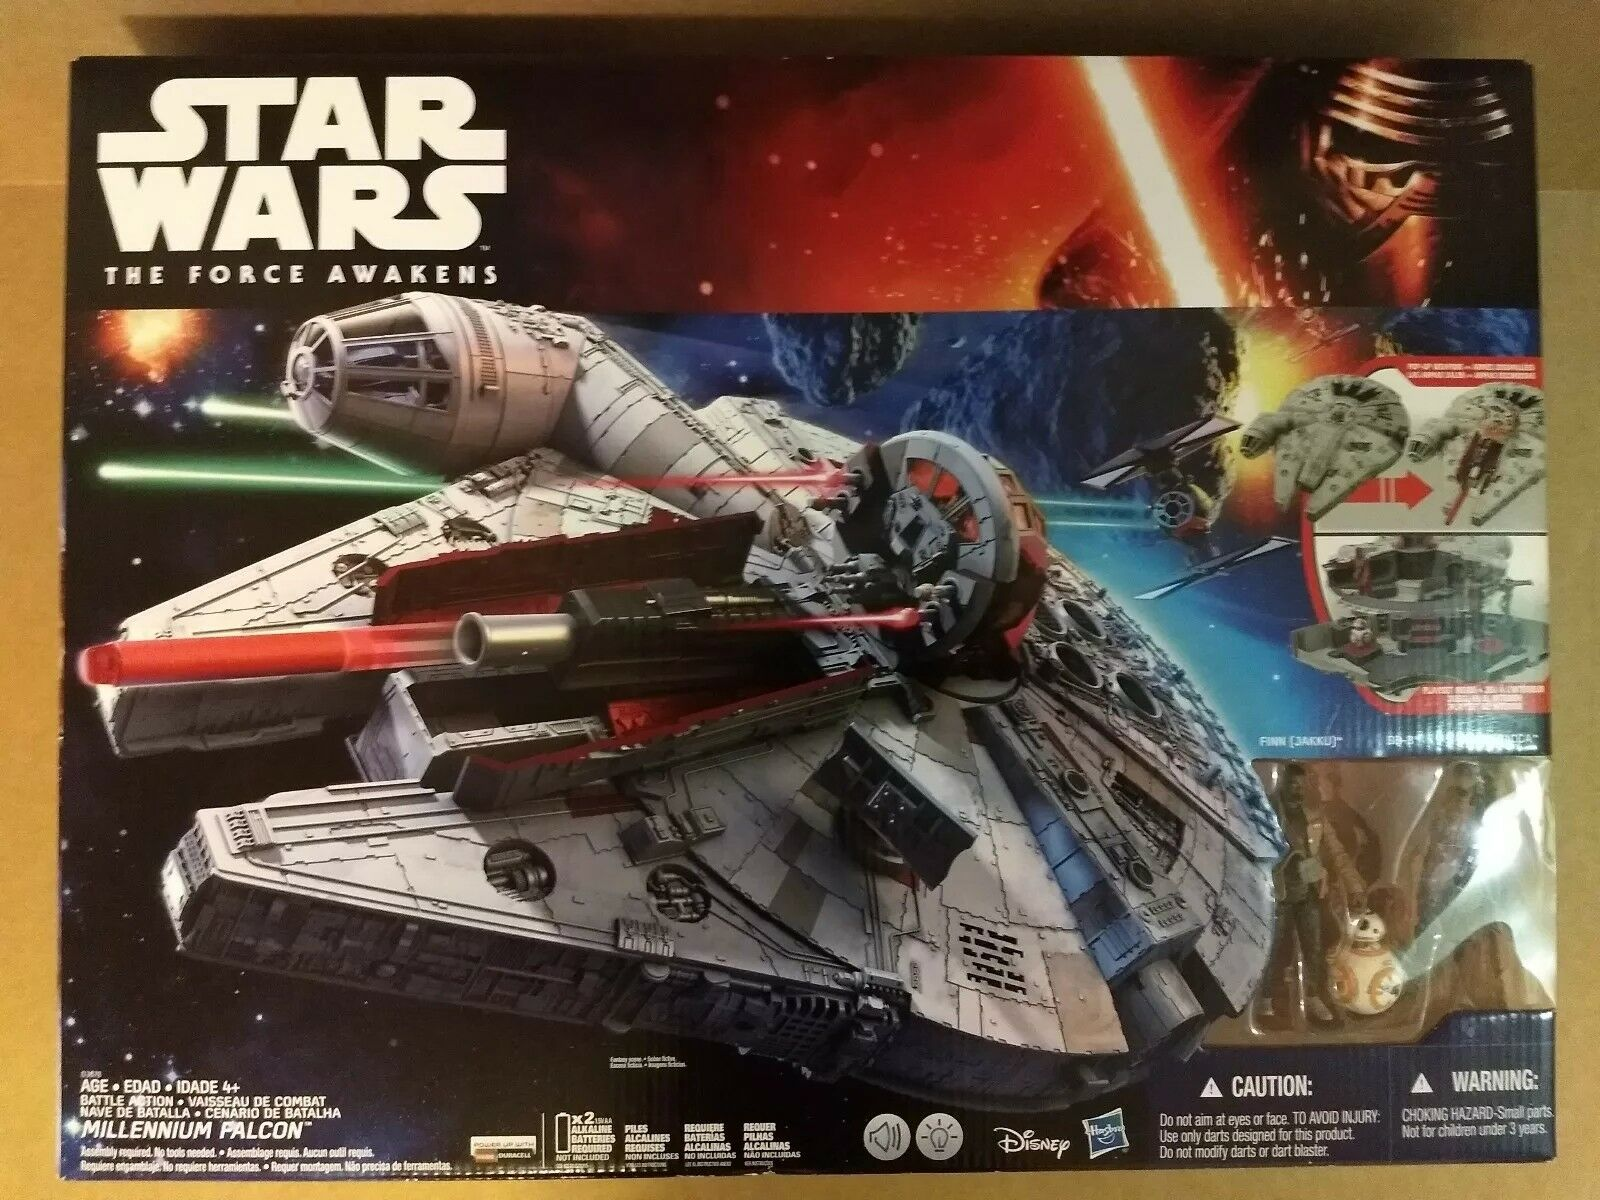 Star Wars The Force Awakens Battle Action Millennium Falcon Brand New 2015